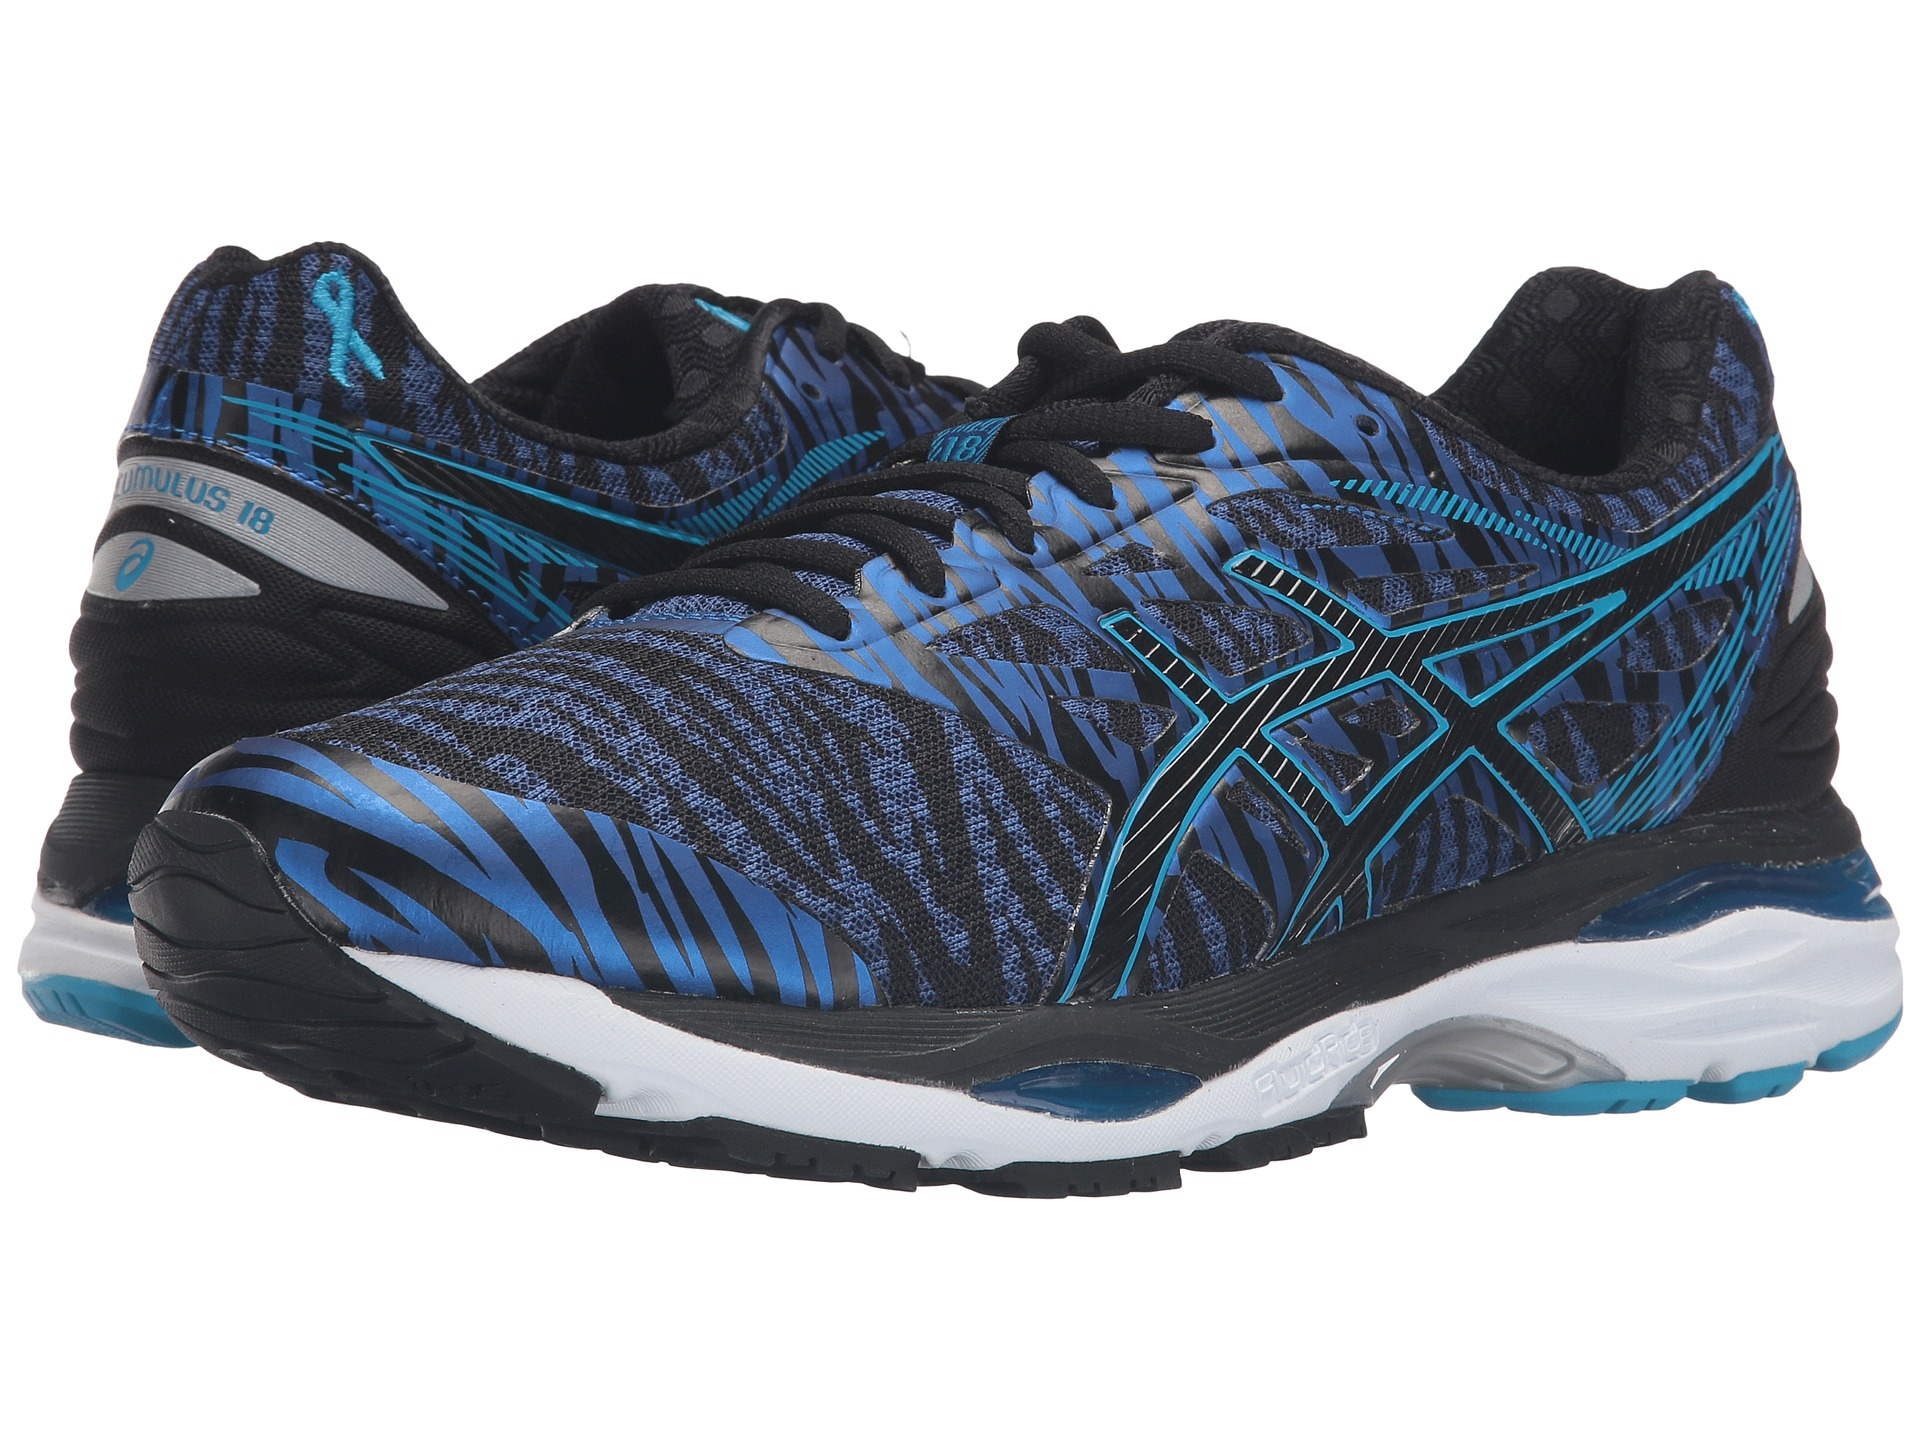 asics gel foundation 7 2016